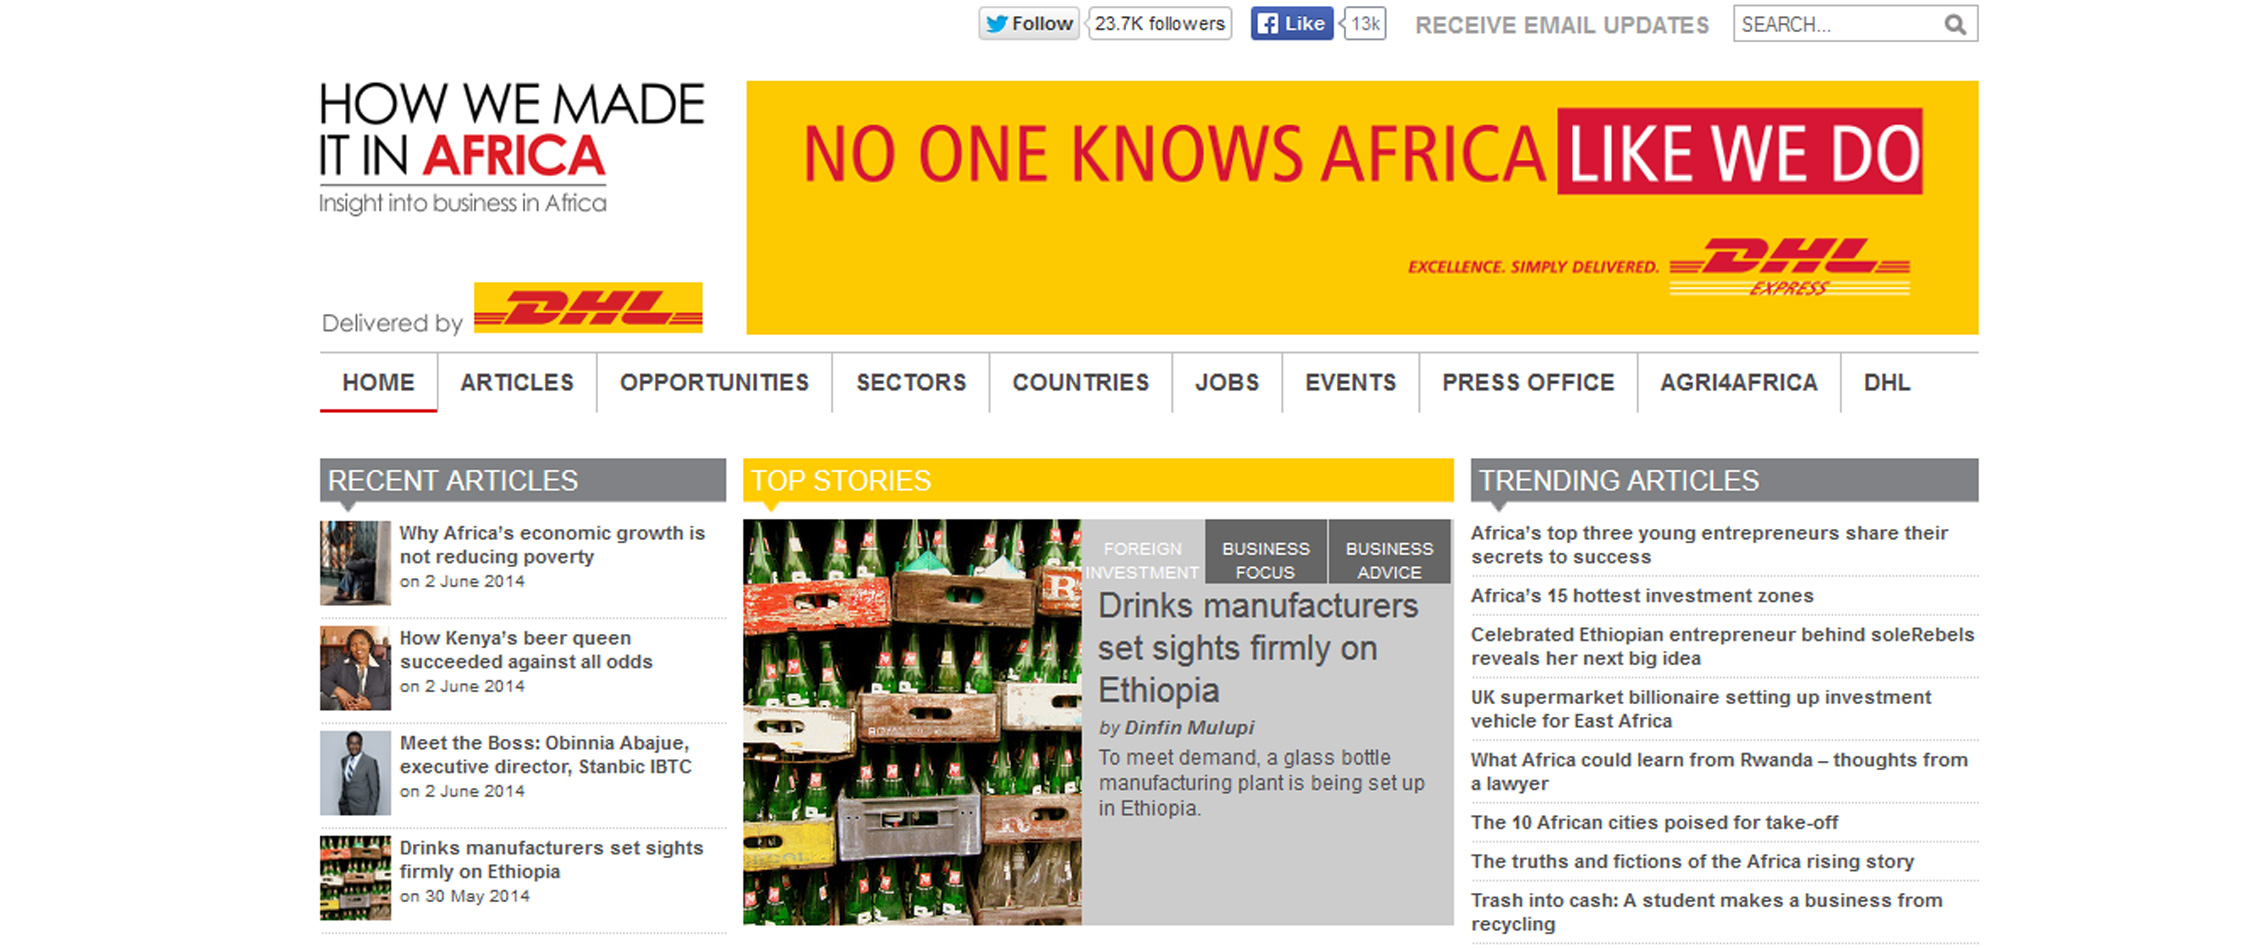 FOR UPDATED ARTICLES CLICK ON IMAGE